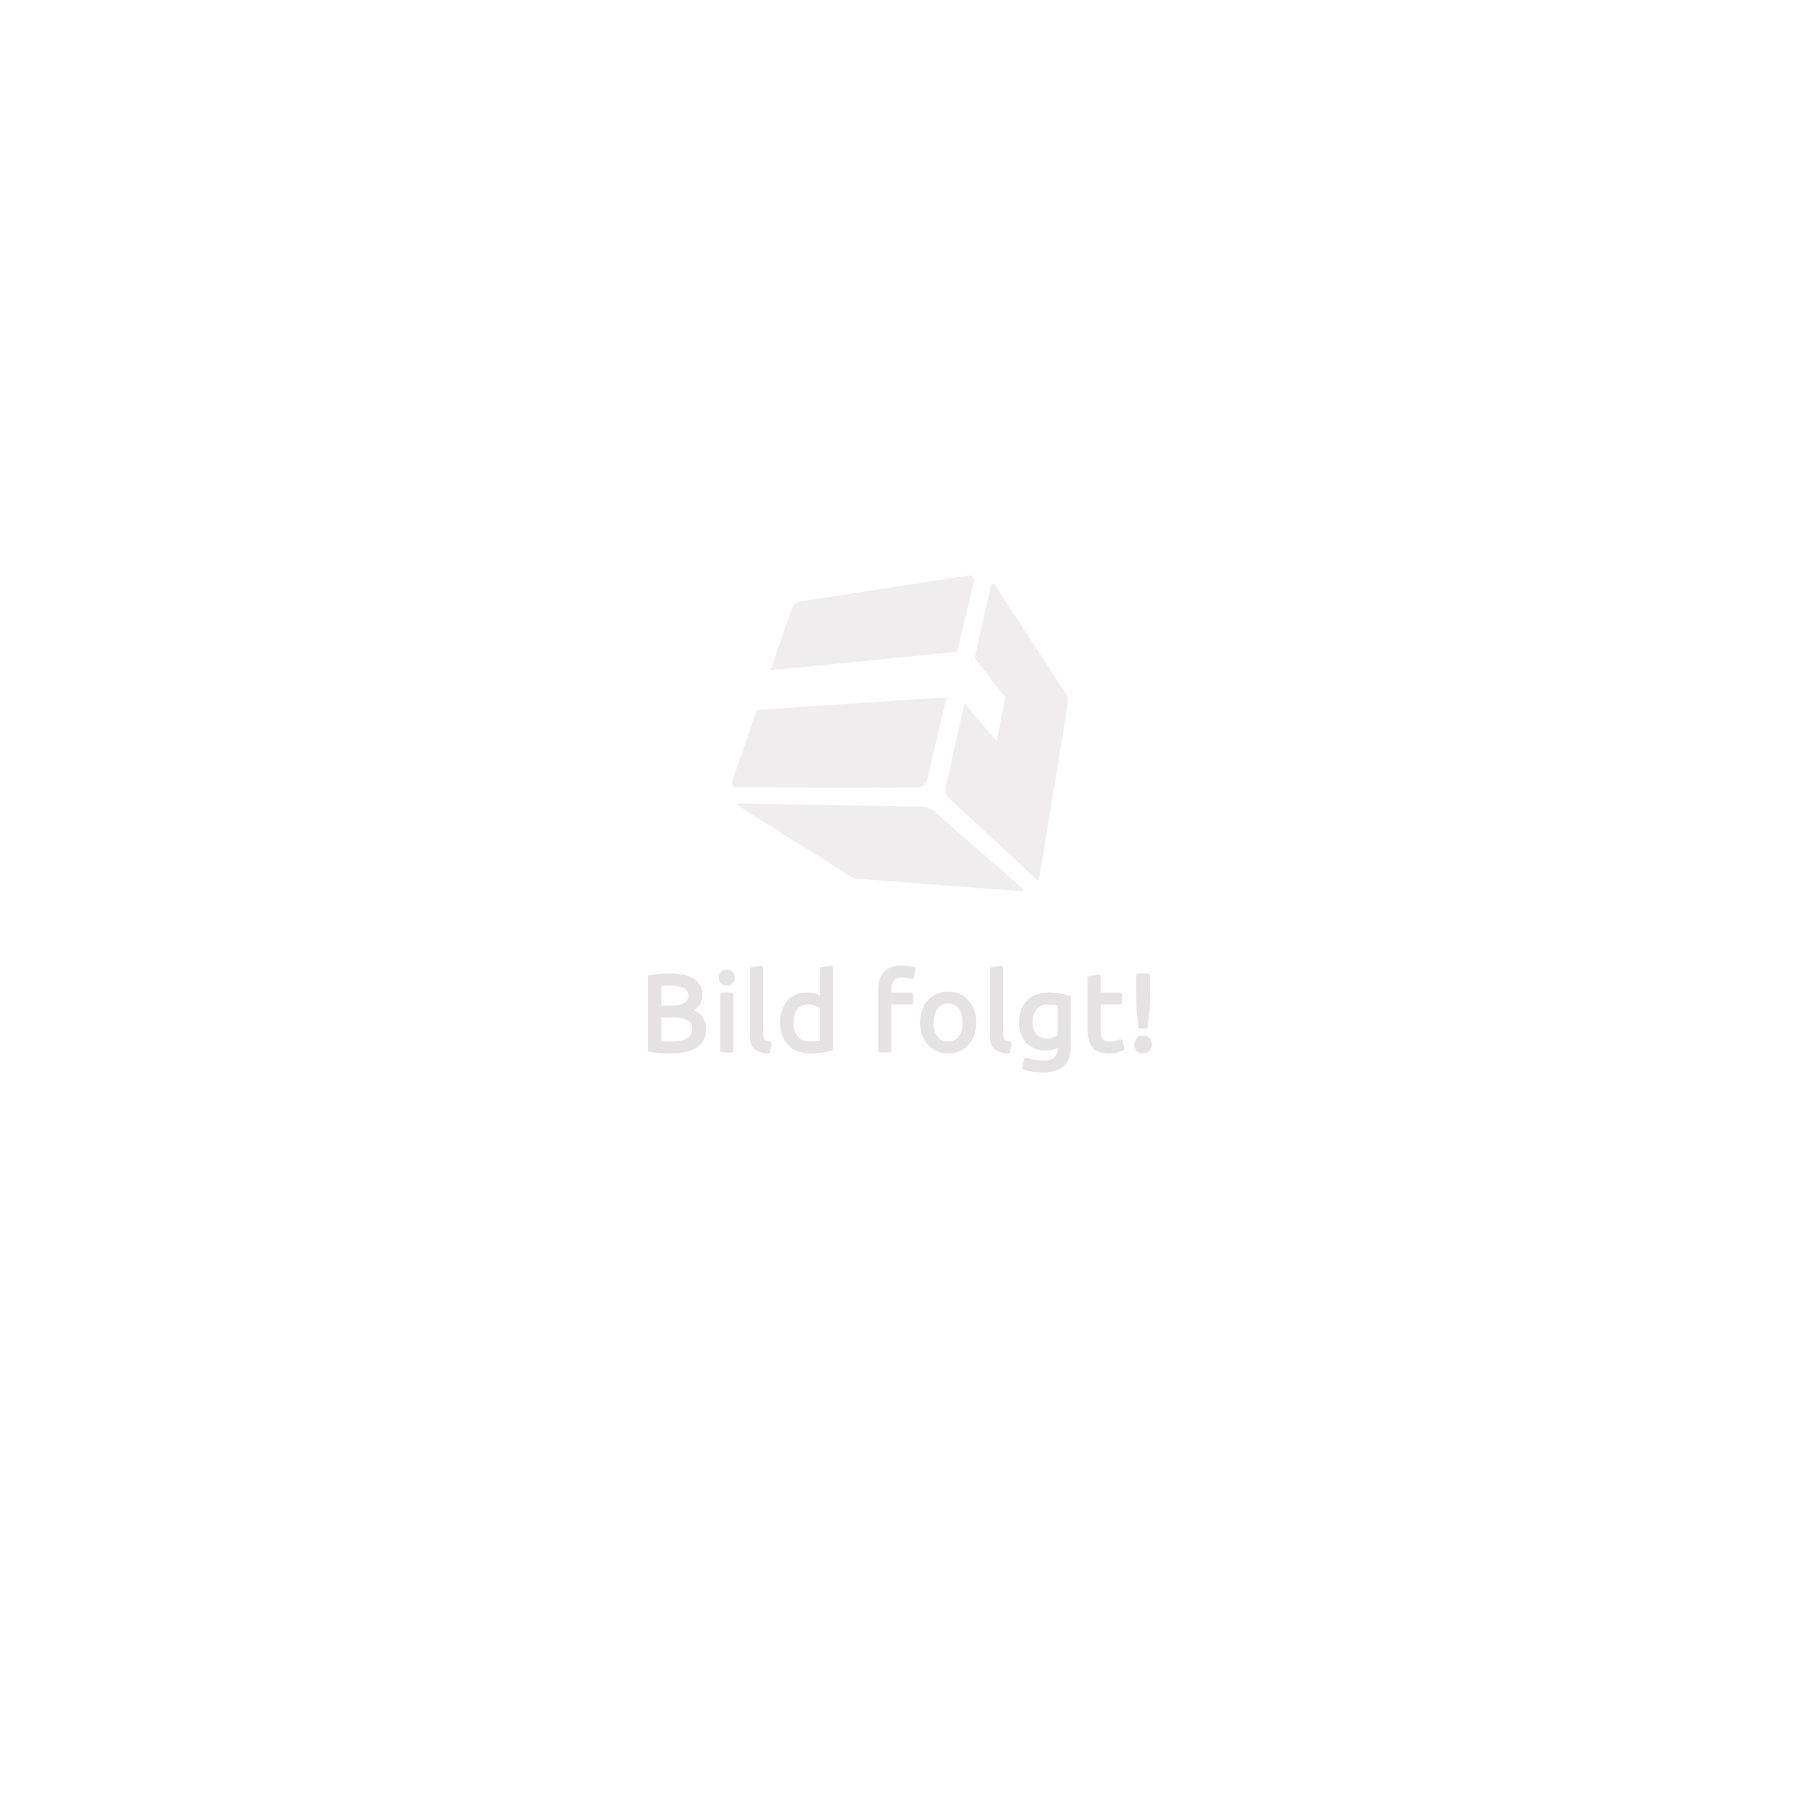 Shop Cheap Hanging Chair With Round Frame Rattan Online Tectake